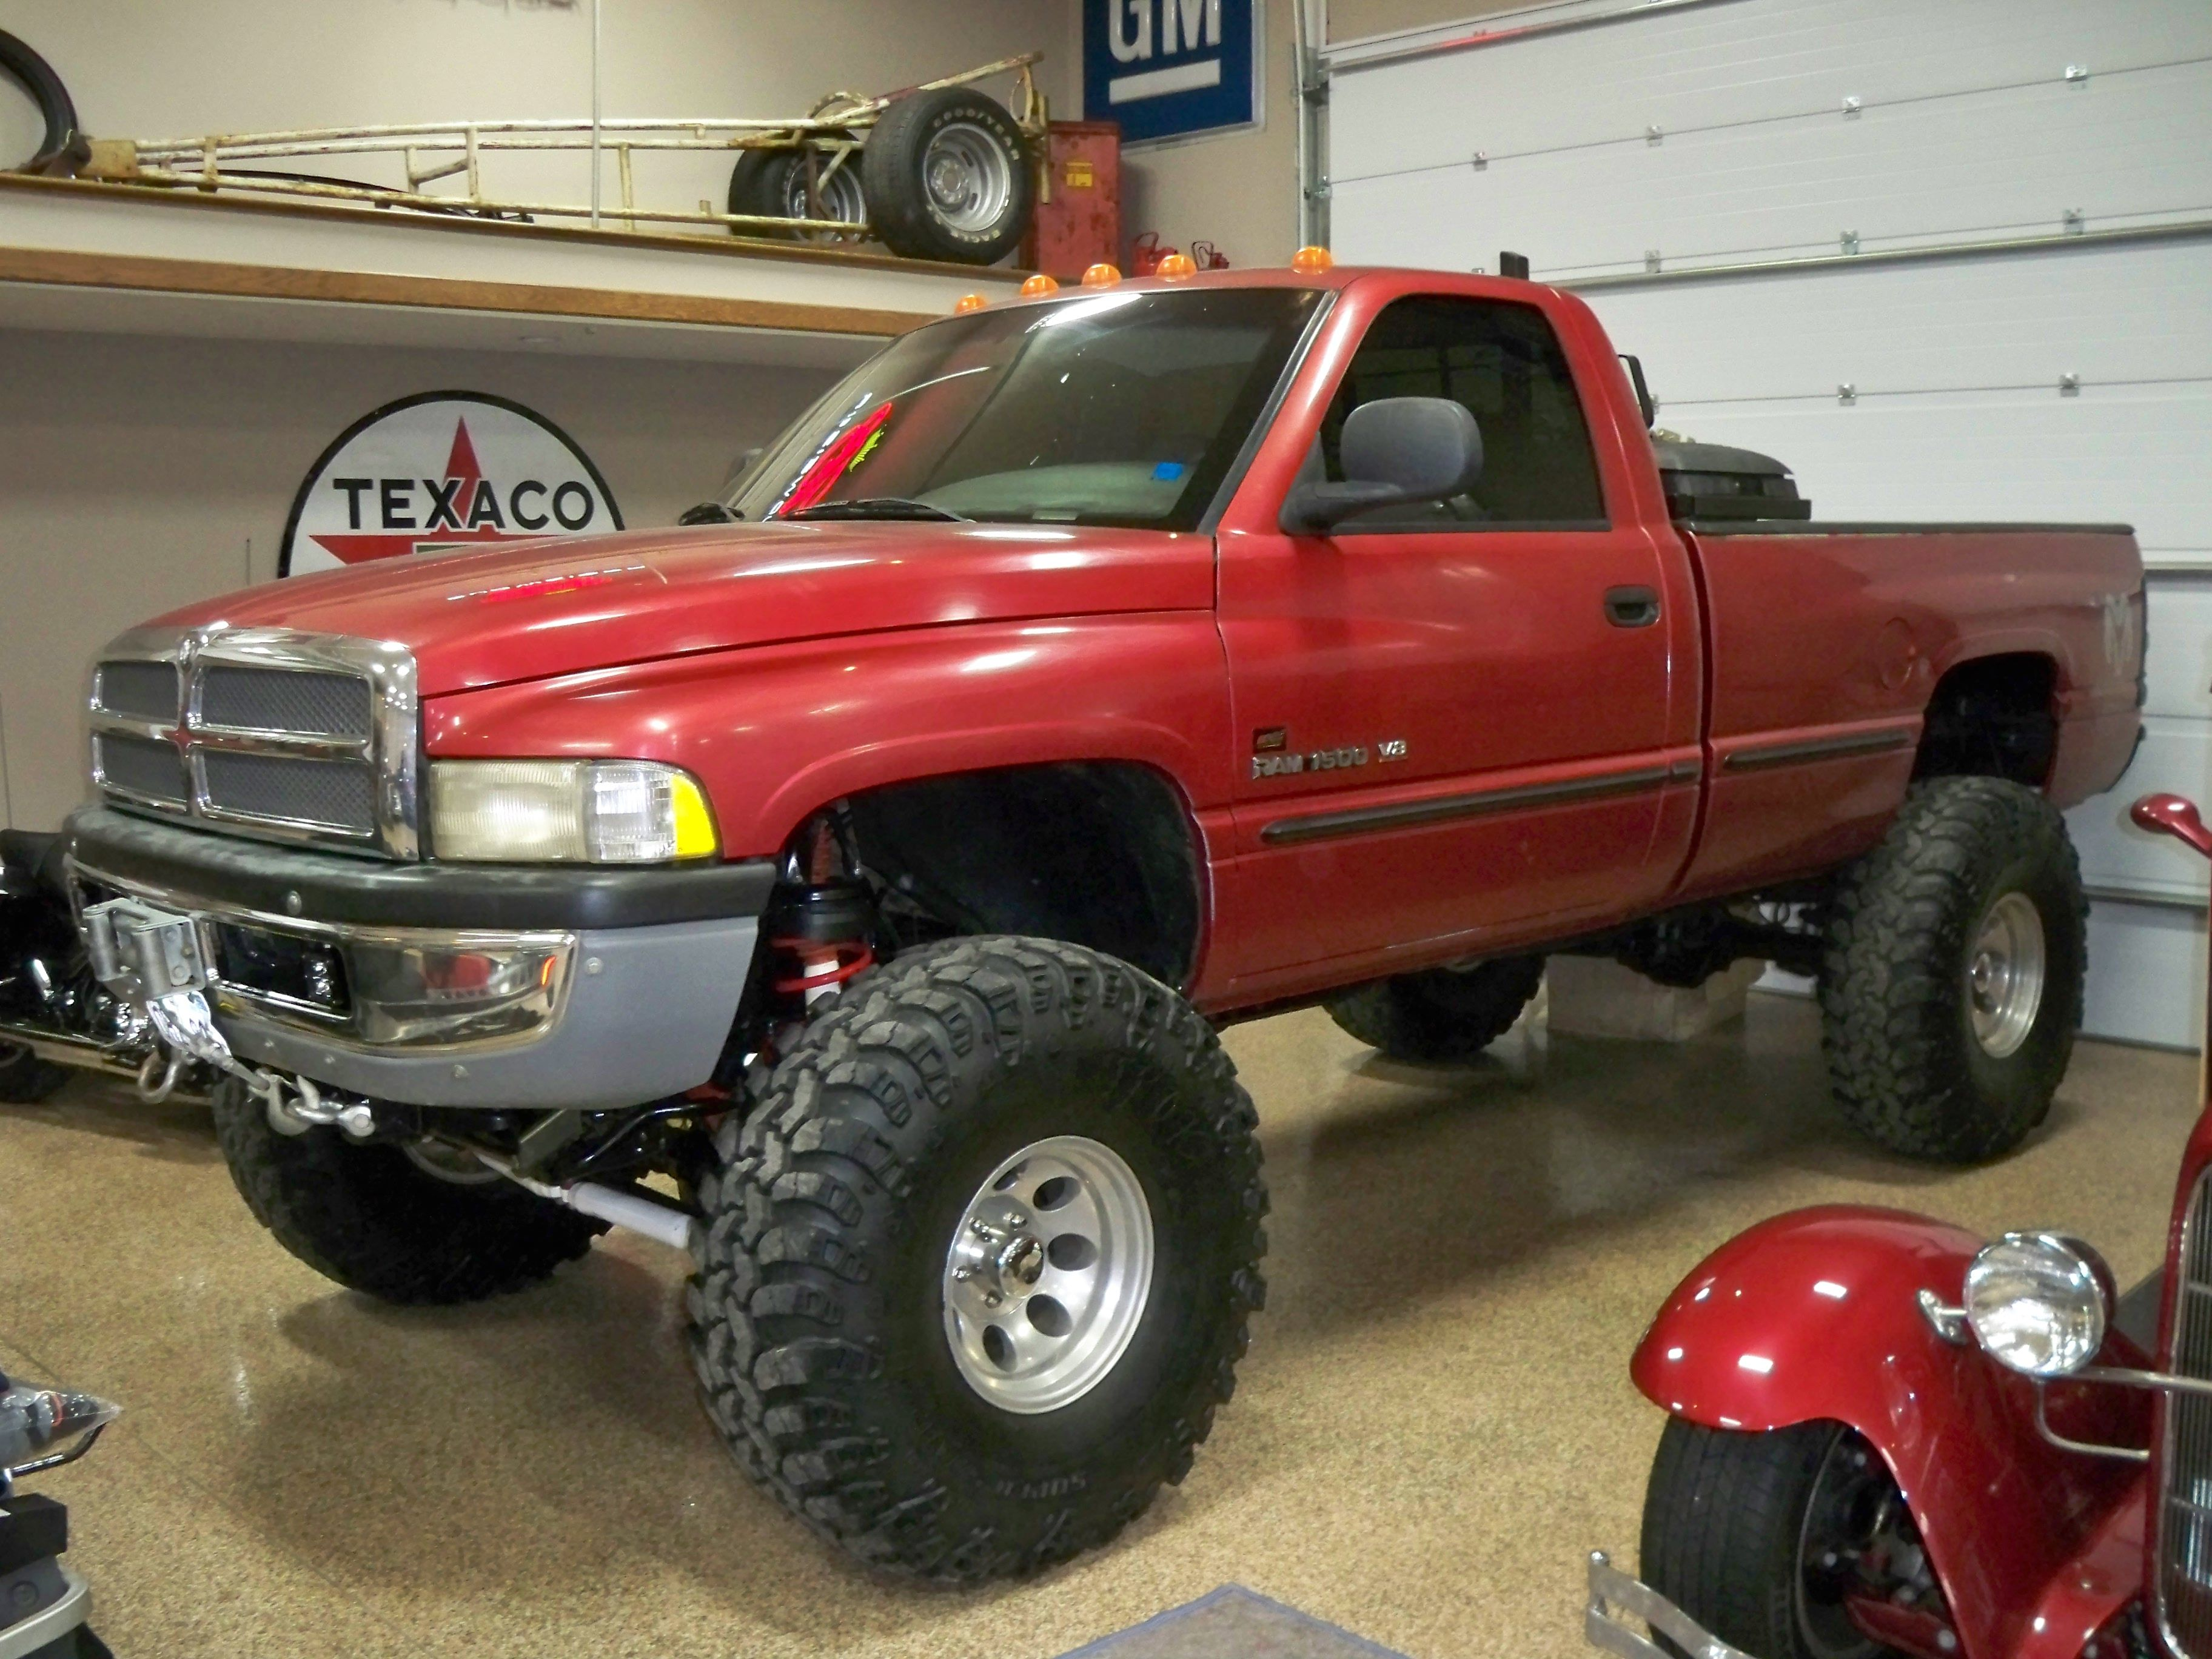 hight resolution of 1998 dodge ram 4x4 12 lift 42 tires 360 magnum 400hp